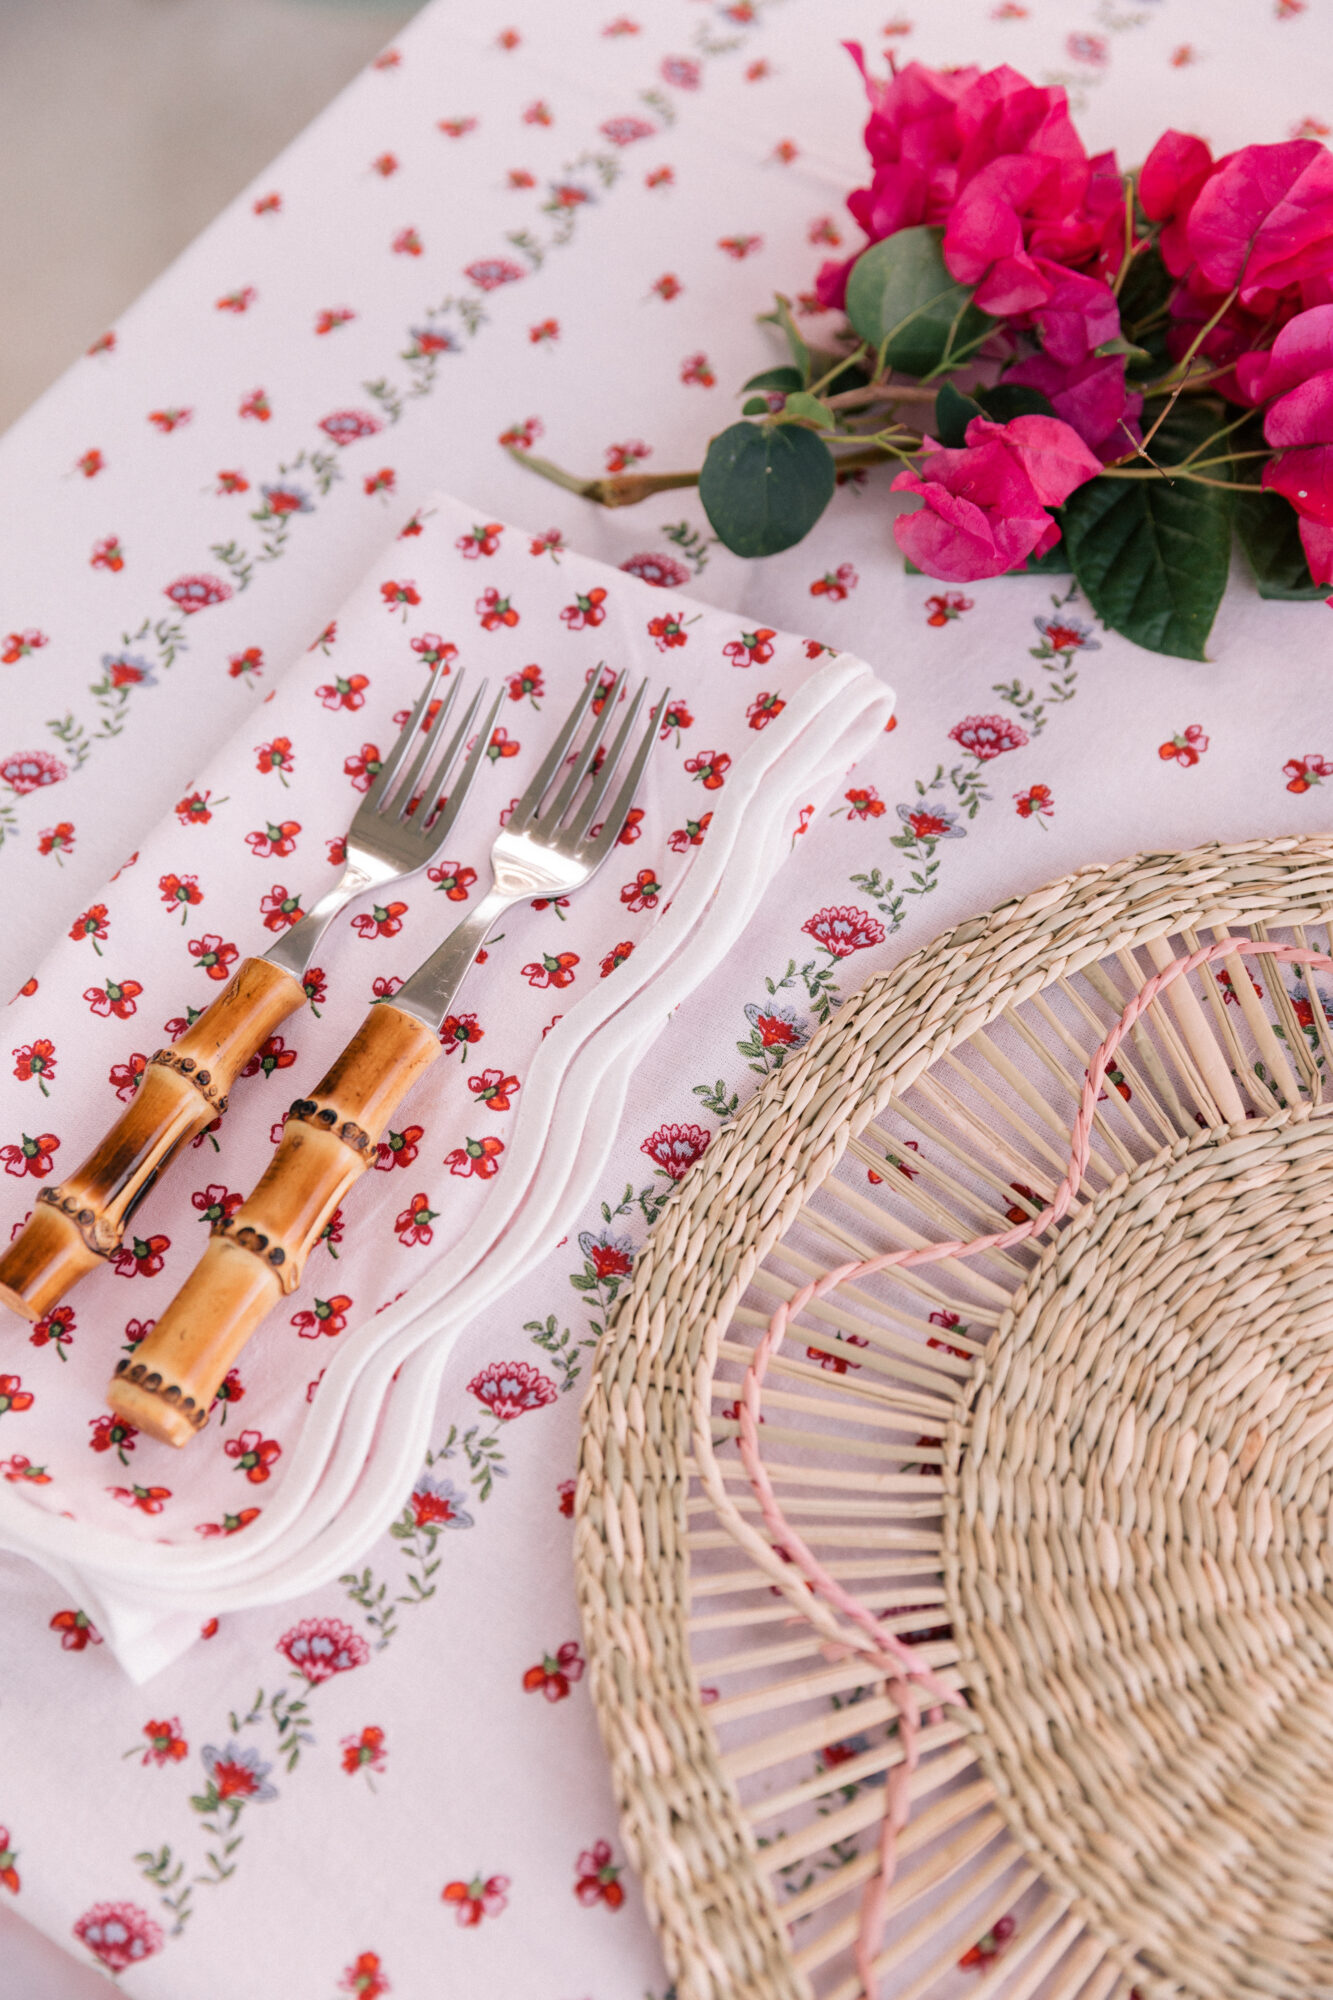 A rattan-detailed place-mat sits atop a colorful, floral tablecloth